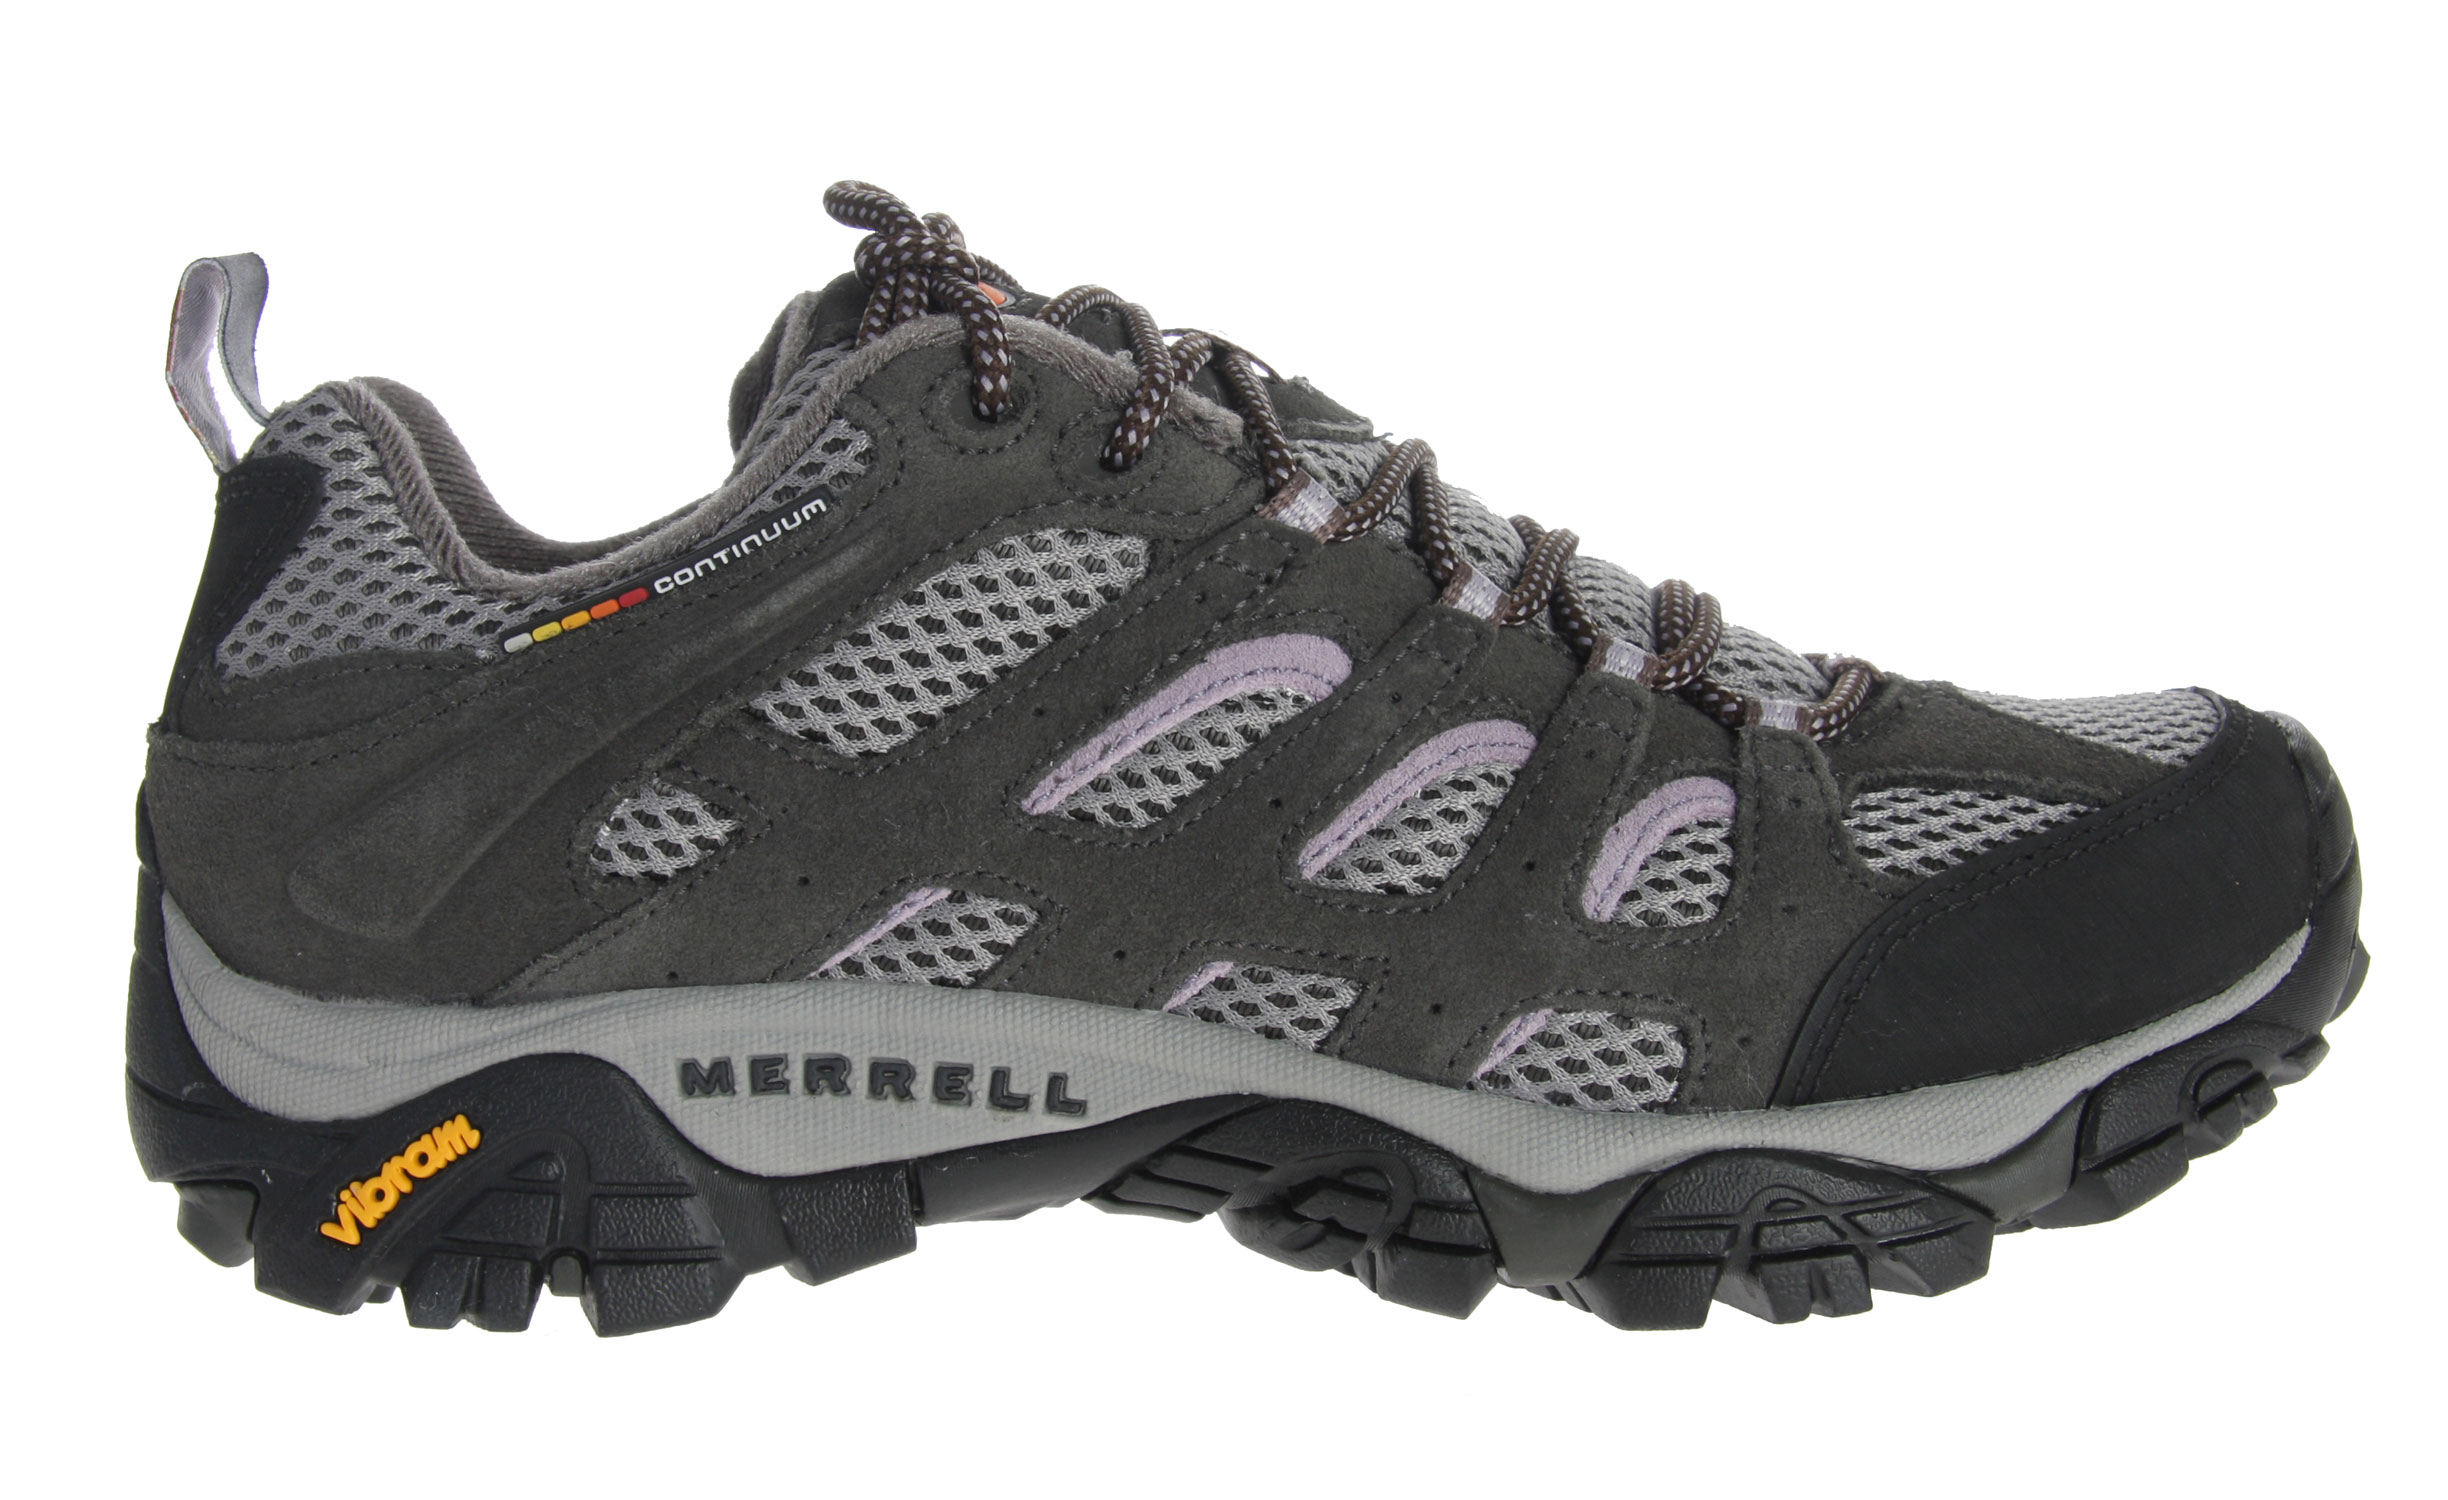 Camp and Hike Merrell's endless summer essential hiking shoe now with highly evolved breathability for hiking or biking the trails. A lattice-like overlay of Dura leather strapping supports and protects while enhancing the open-window venting of the breathable mesh upper that is a Merrell mark. Full bumper protection at the toe and around the heel Proven Vibram Multi-Sport sole with TC5+ rubber compound for grip and durability.Key Features of the Merrell Moab Ventilator Low Hiking Shoes: Dura leather and mesh upper Bellows tongue keeps debris out Synthetic leather toe cap and heel counter Breathable mesh lining treated with Aegis Antimicrobial solution Ortholite Anatomical Footbed Molded nylon arch shank Compression molded EVA footframe provides cushioning Merrell air cushion in the heel absorbs shock and adds stability QForm Comfort midsole provides women's specific stride-sequenced cushioning 5mm Sole lug depth Vibram Multi-Sport Sole/TC5+ Rubber Weight: 1 lb 13 ozs. - $84.95